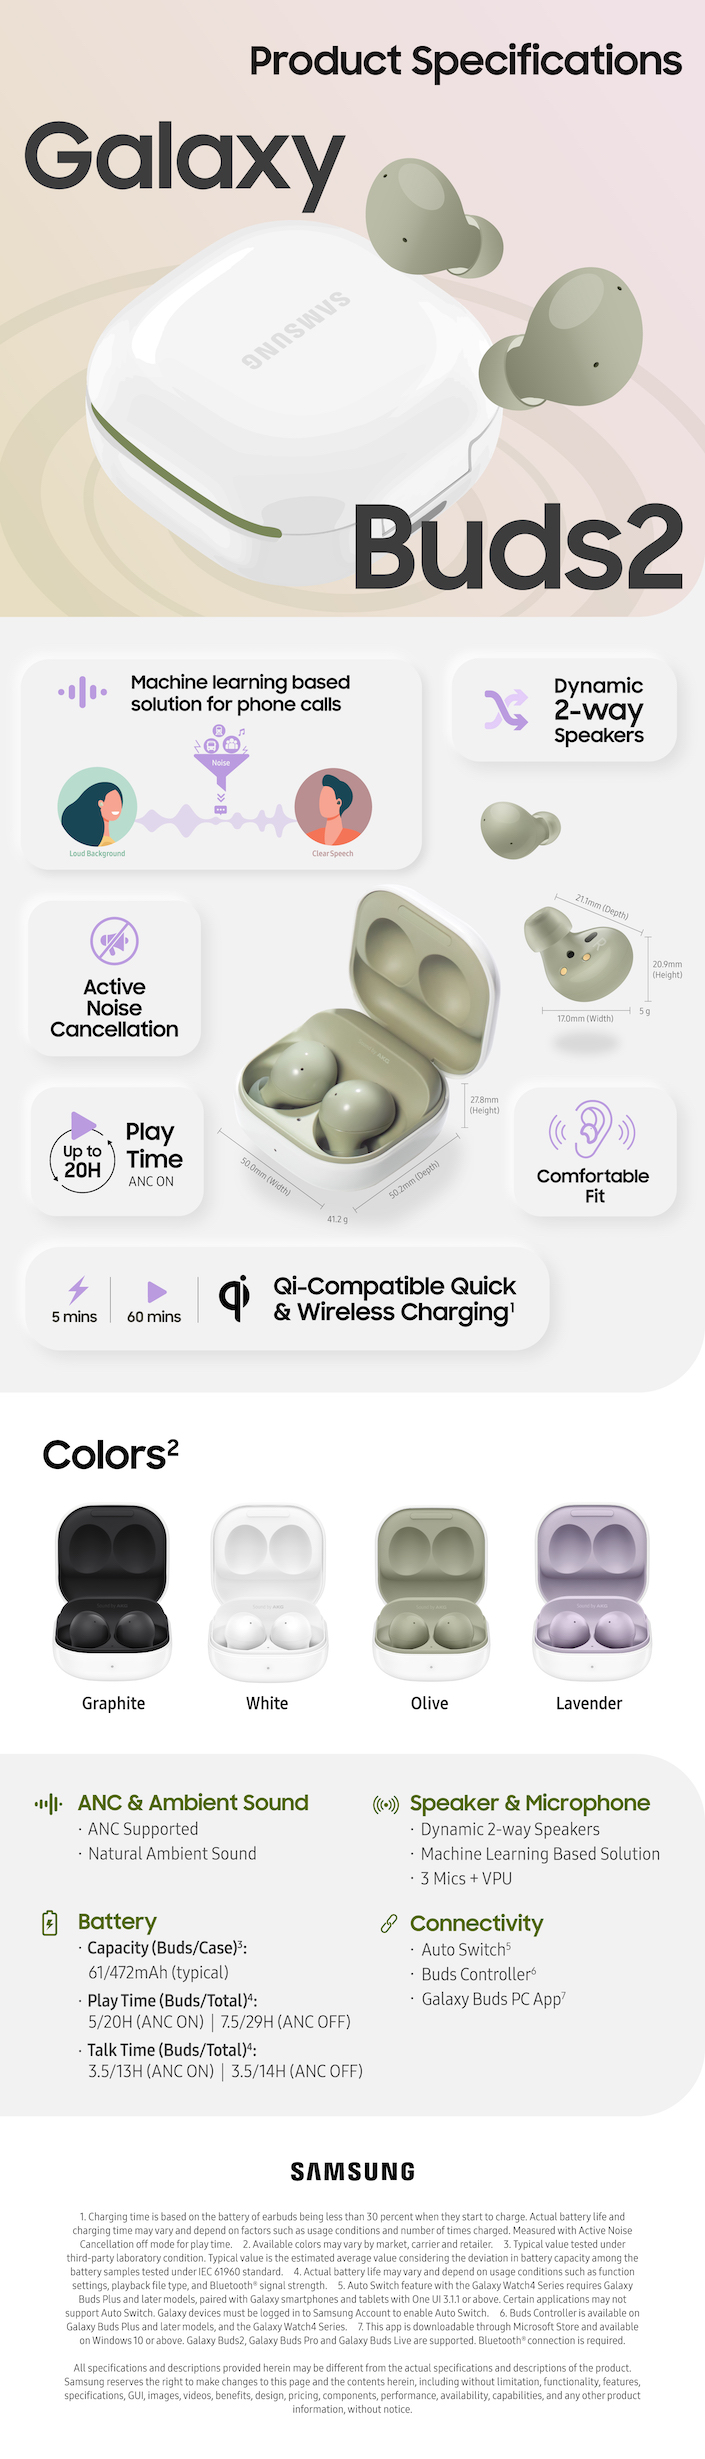 01 galaxy buds2 product specifications